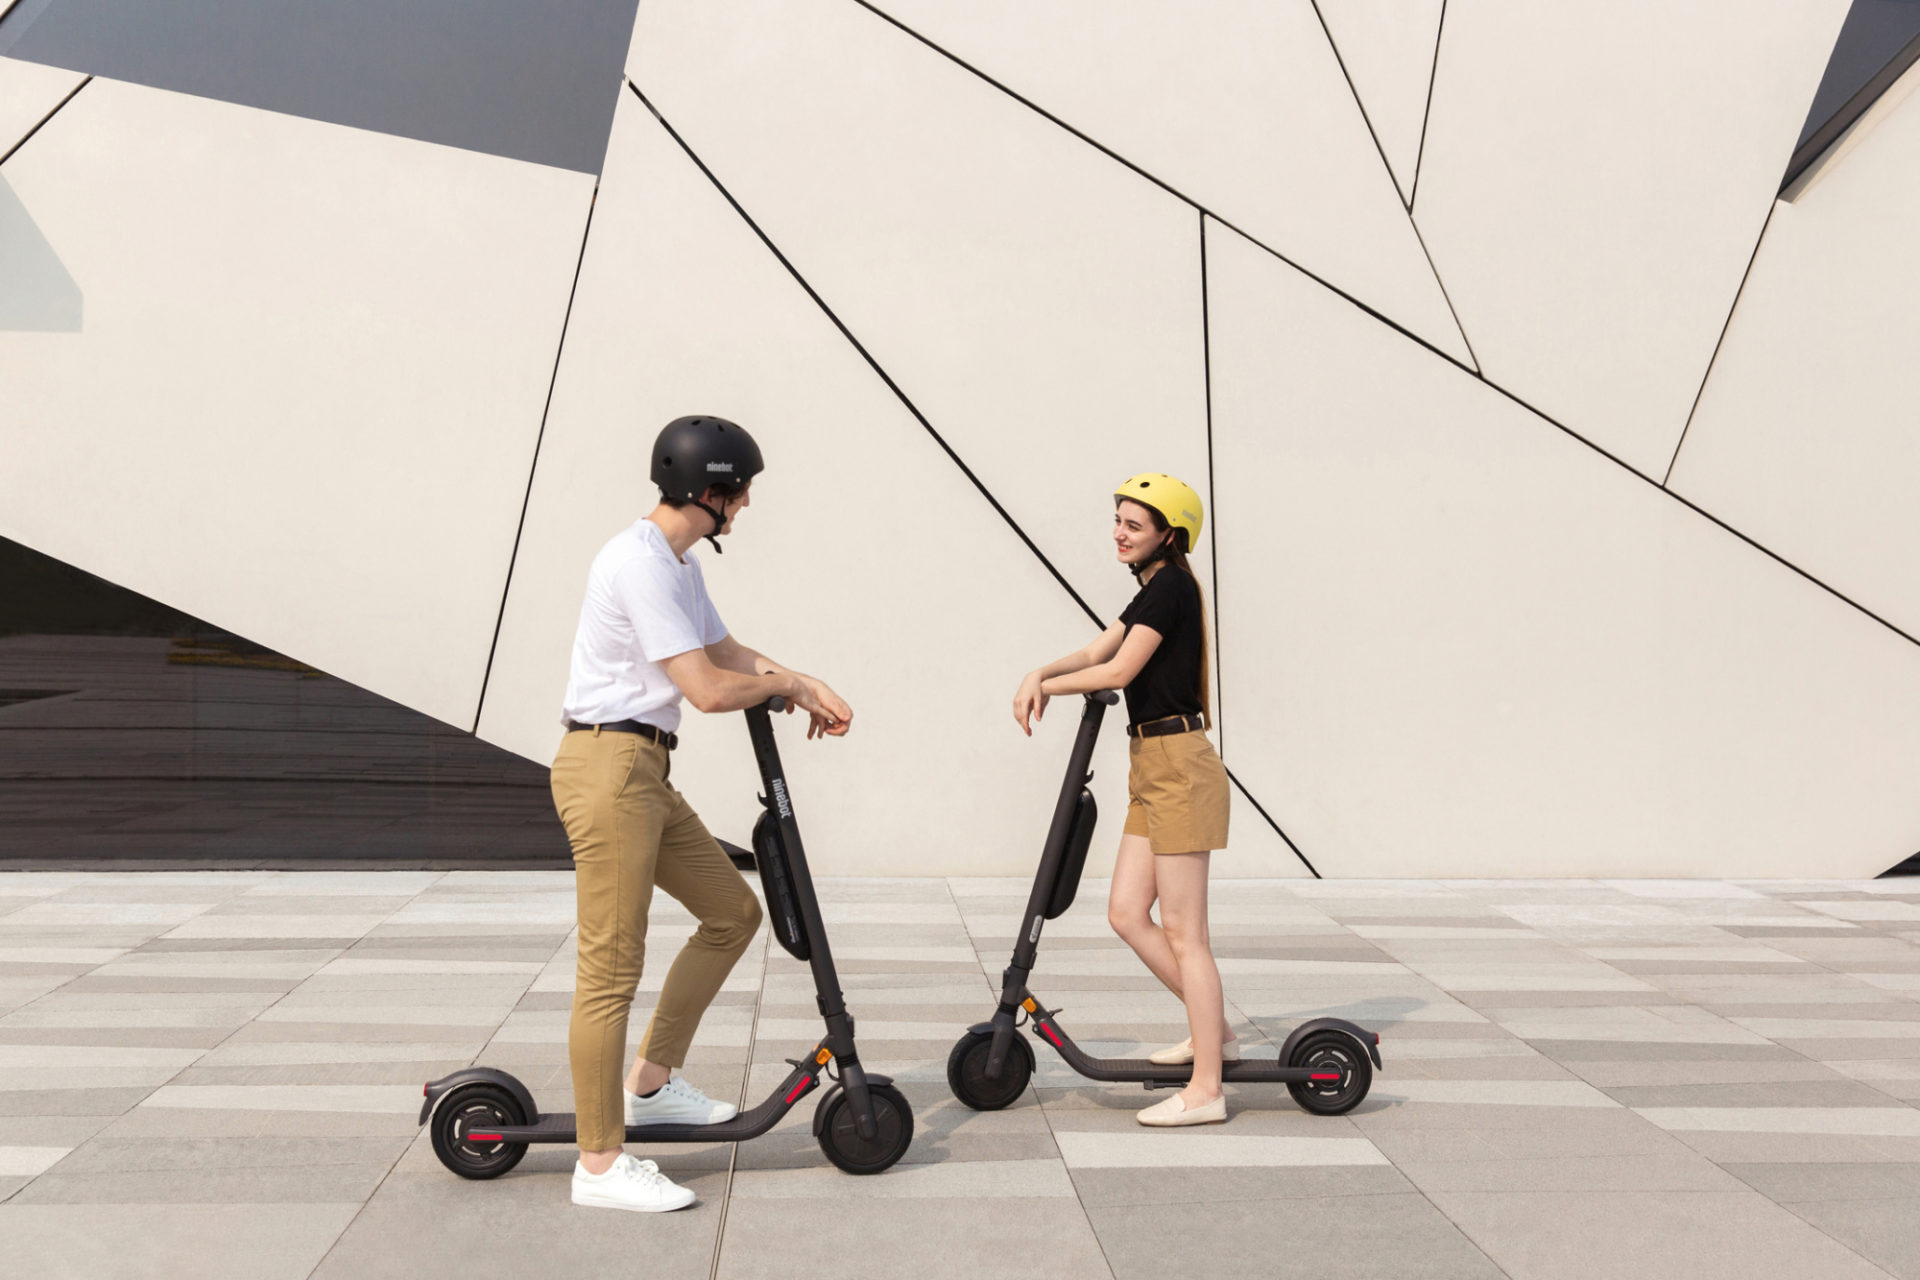 [hero] Ninebot KickScooter E45E Powered by Segway